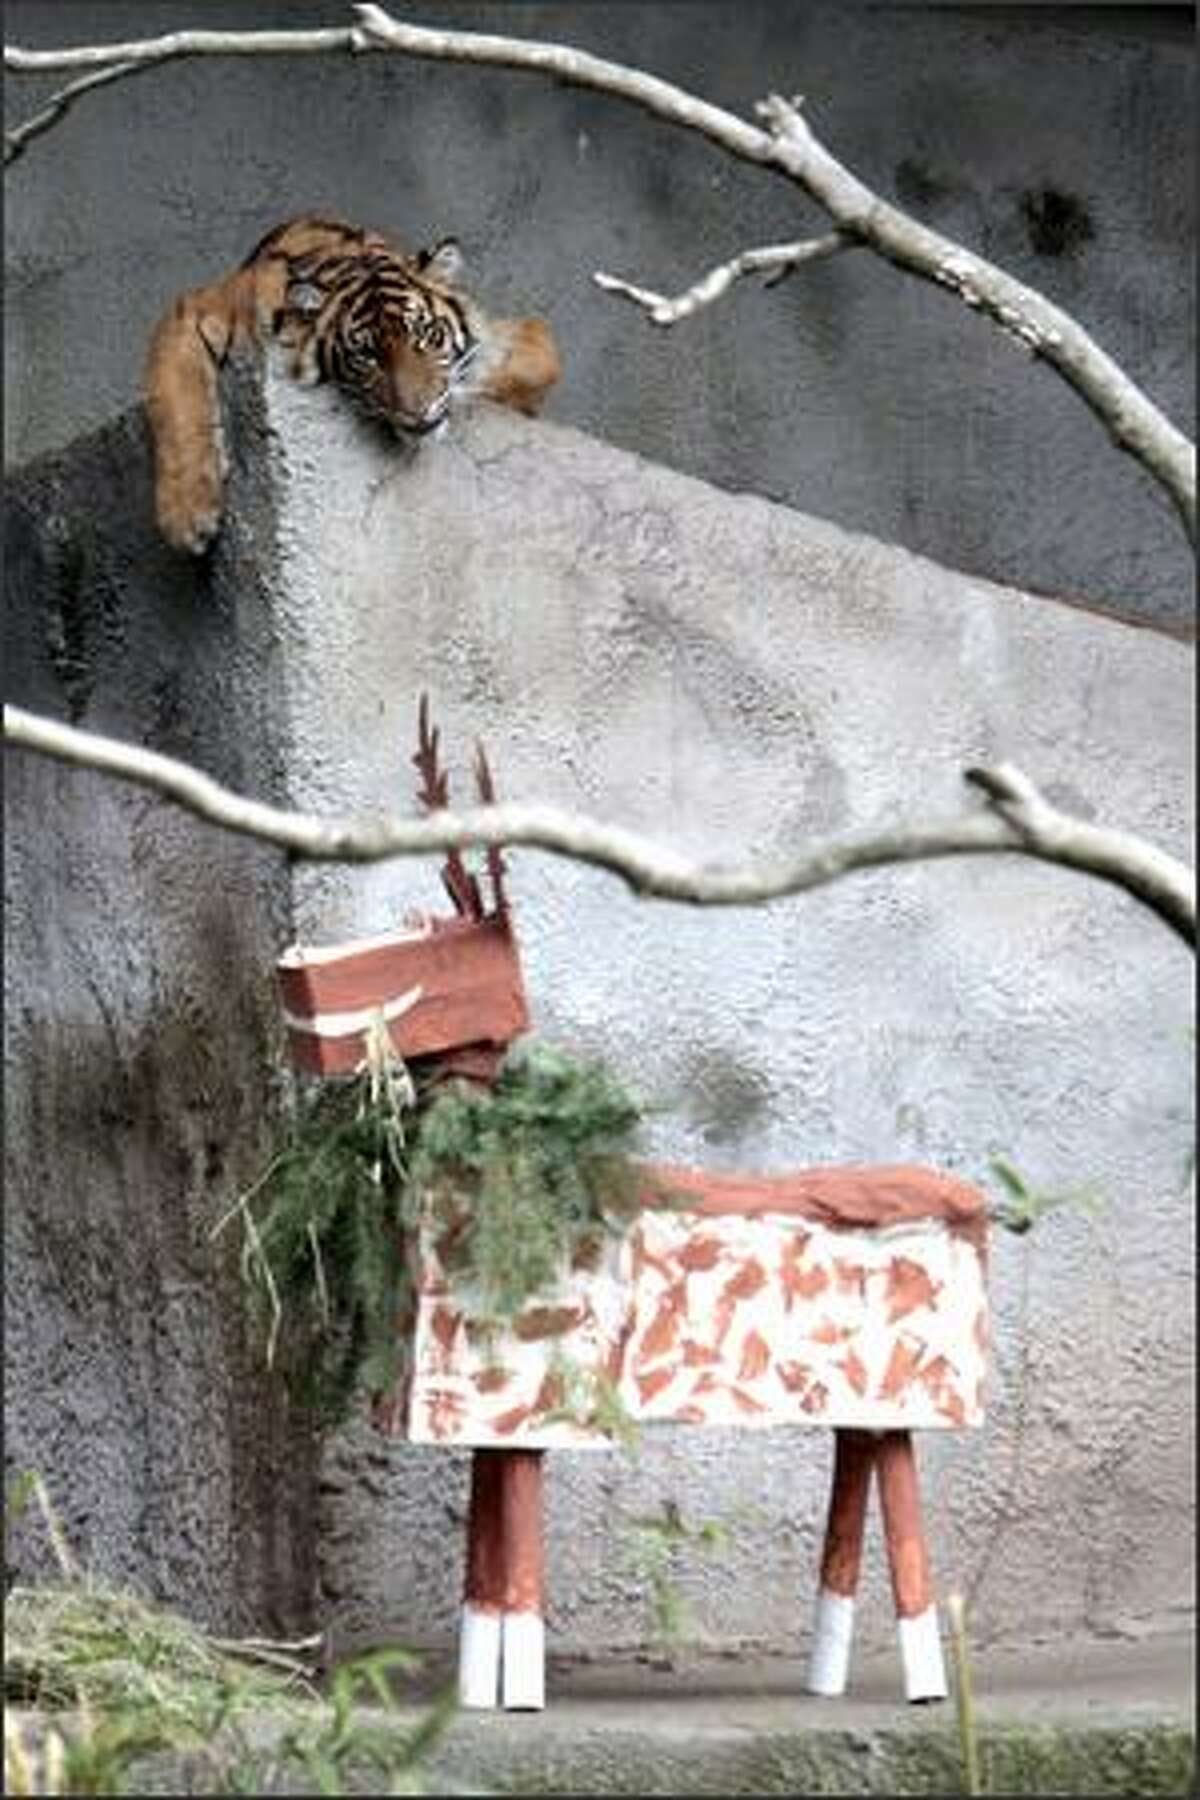 Hadiah, a Sumatran tiger, attacks a papier mache reindeer given for her first birthday at the Woodland Park Zoo.